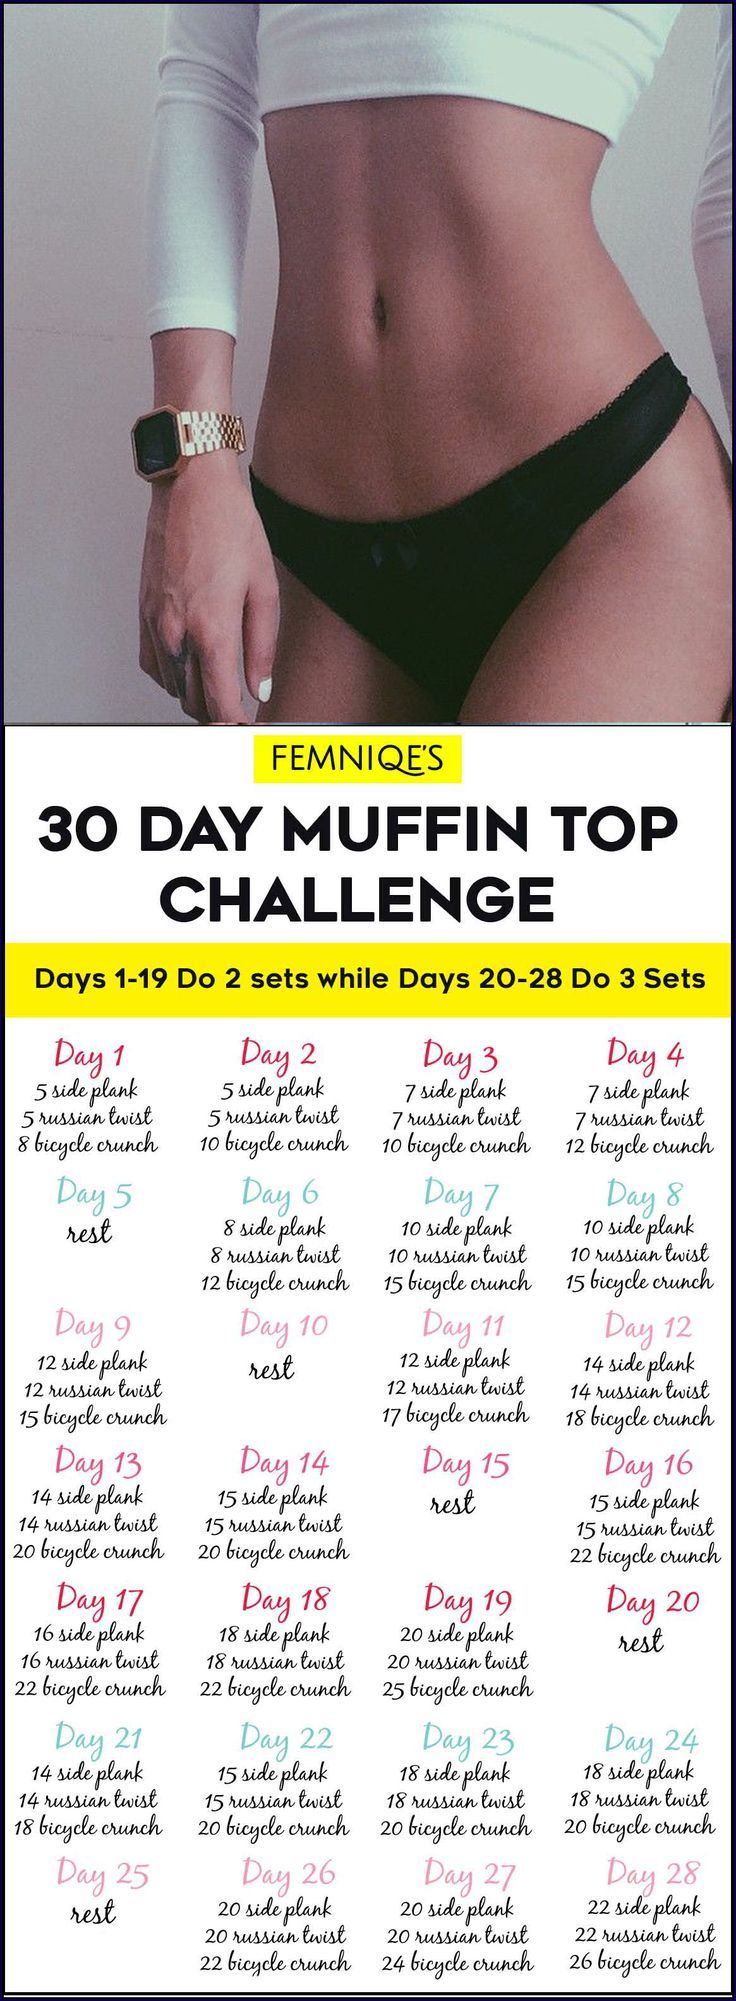 30 Day Muffin Top Challenge Workout/Exercise Calendar Love Handles - This 30 Day Muffin Top Challenge will help you get a smaller waist showing your true curves! - Tap the pin if you love super heroes too! Cause guess what? you will LOVE these super hero fitness shirts!